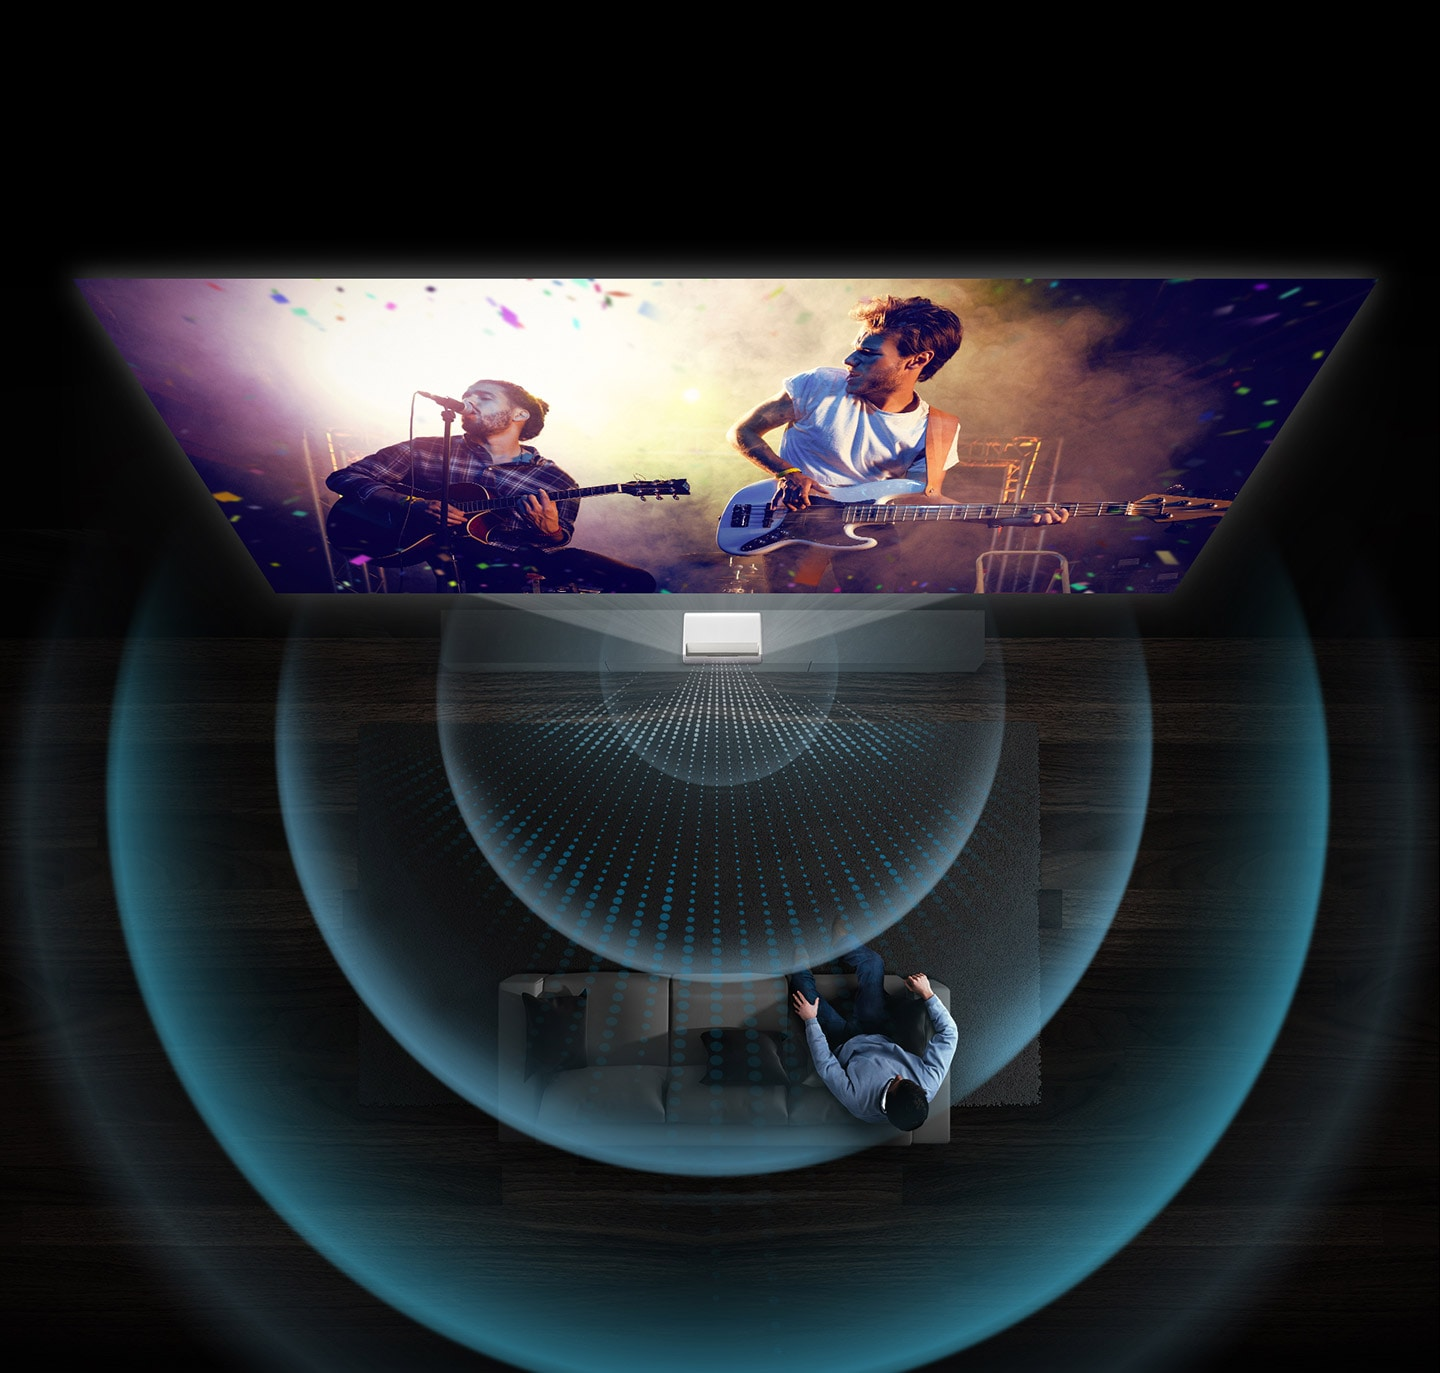 The band concert is shown on Samsung tv projector The Premiere with 4.2 channel 40 watt speakers providing premium sound.